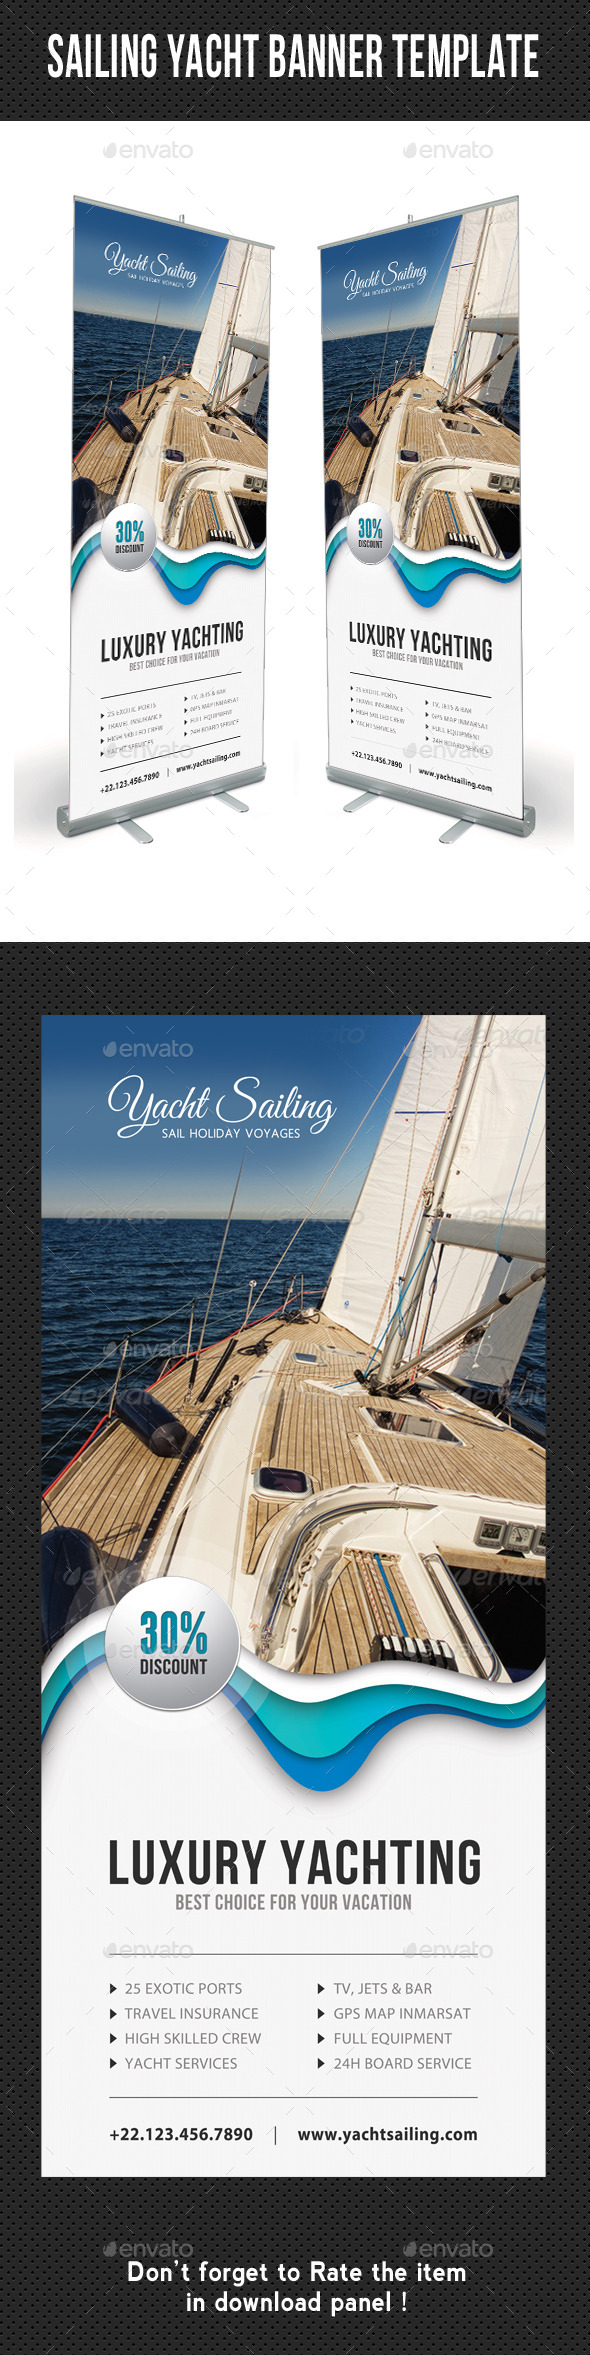 Sailing Yacht Banner Template 07 - Signage Print Templates